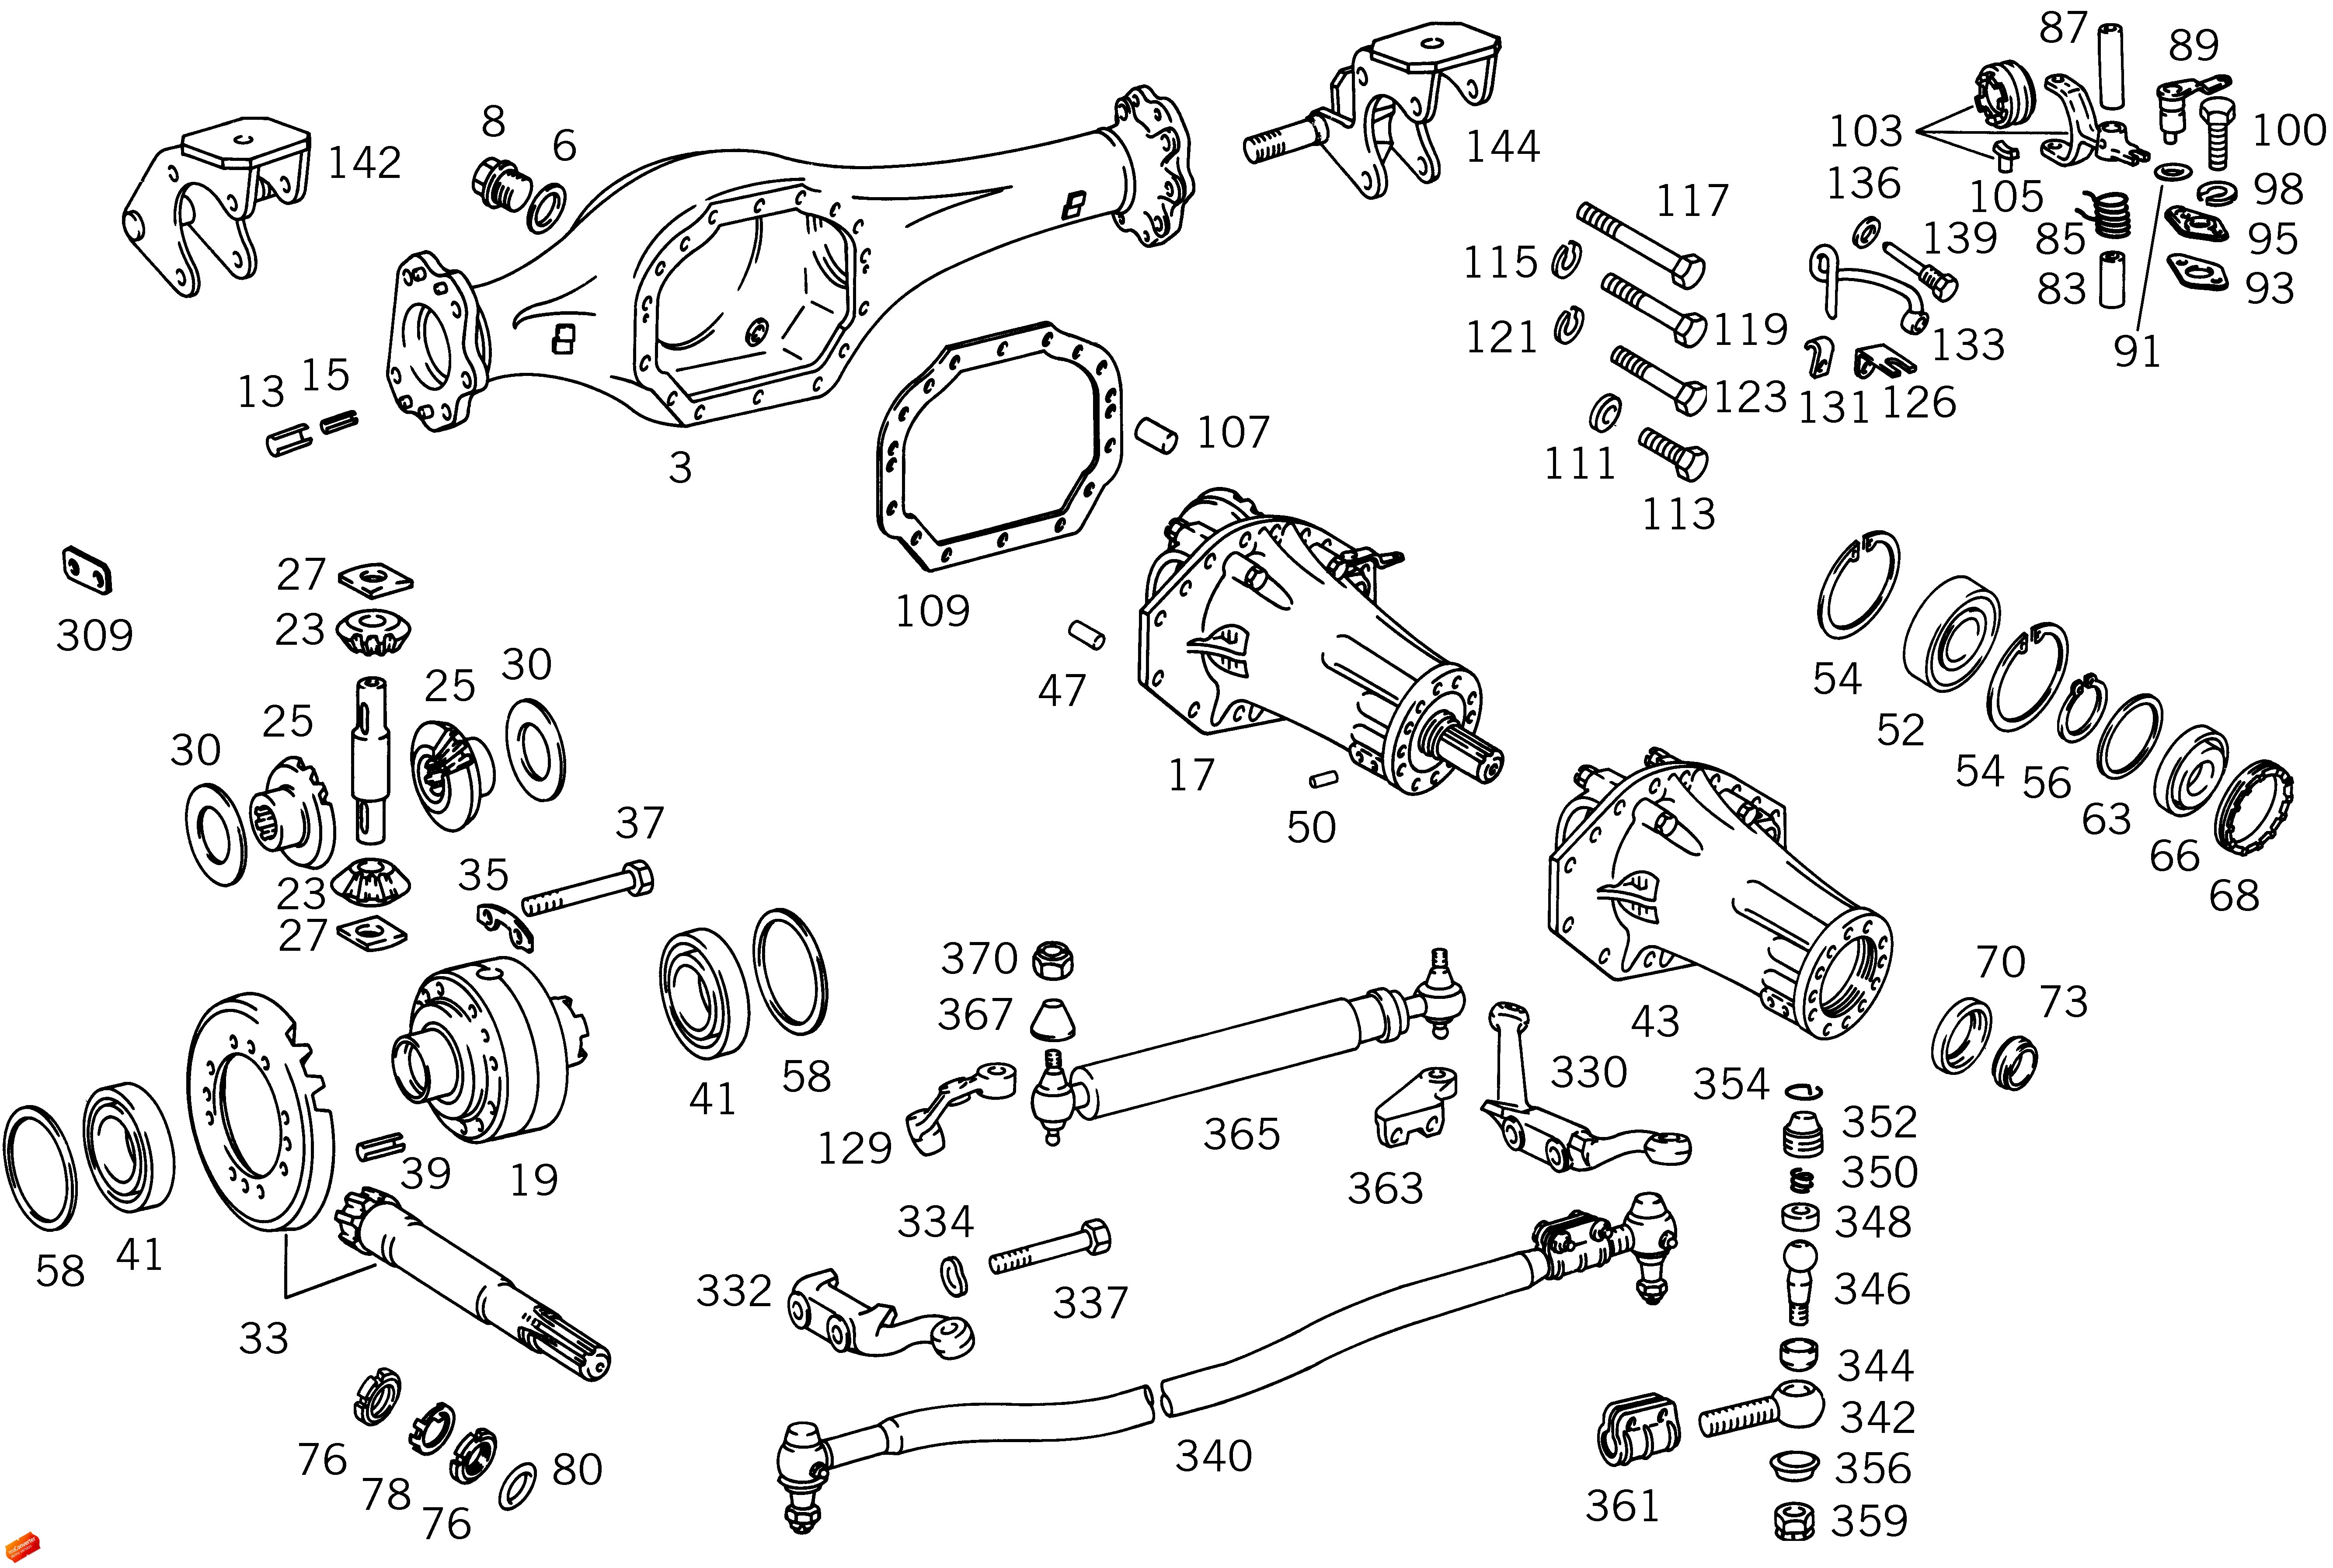 front axle rh expedition imports com Chevy Tracker Rear Axle Exploded View Of Rear Axle Parts Diagram